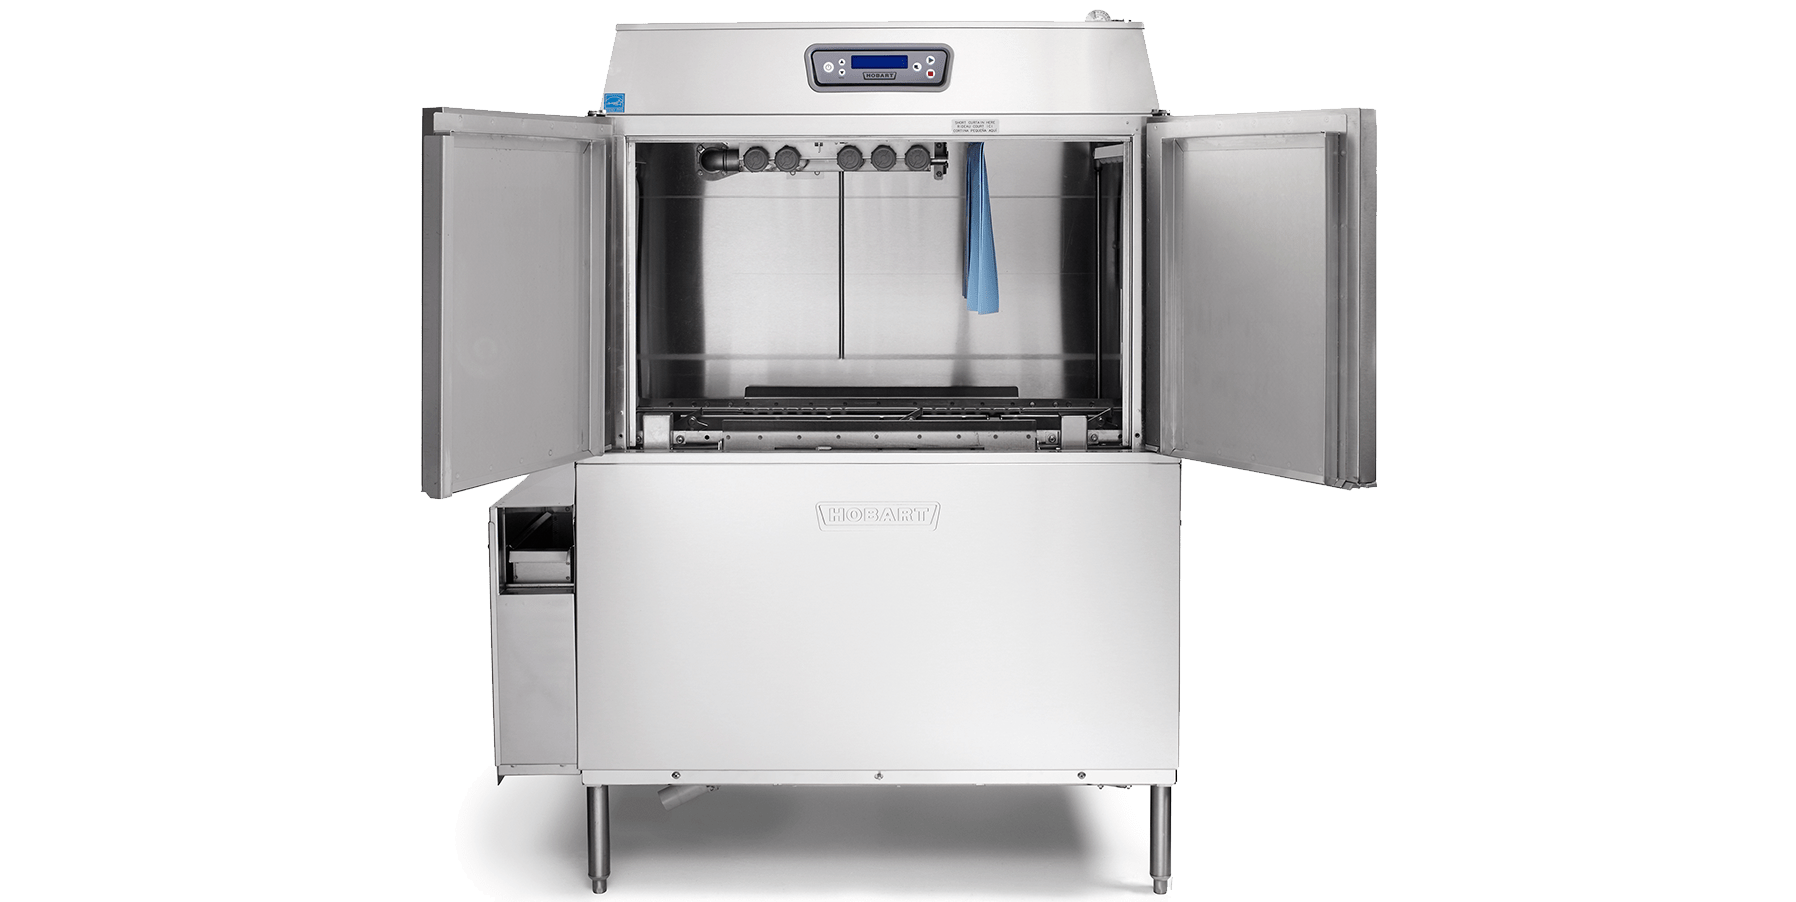 FEBRUARY 9, 2017 / New from Hobart: CLeN Conveyor Dishwasher Launches at 2017 NAFEM Show